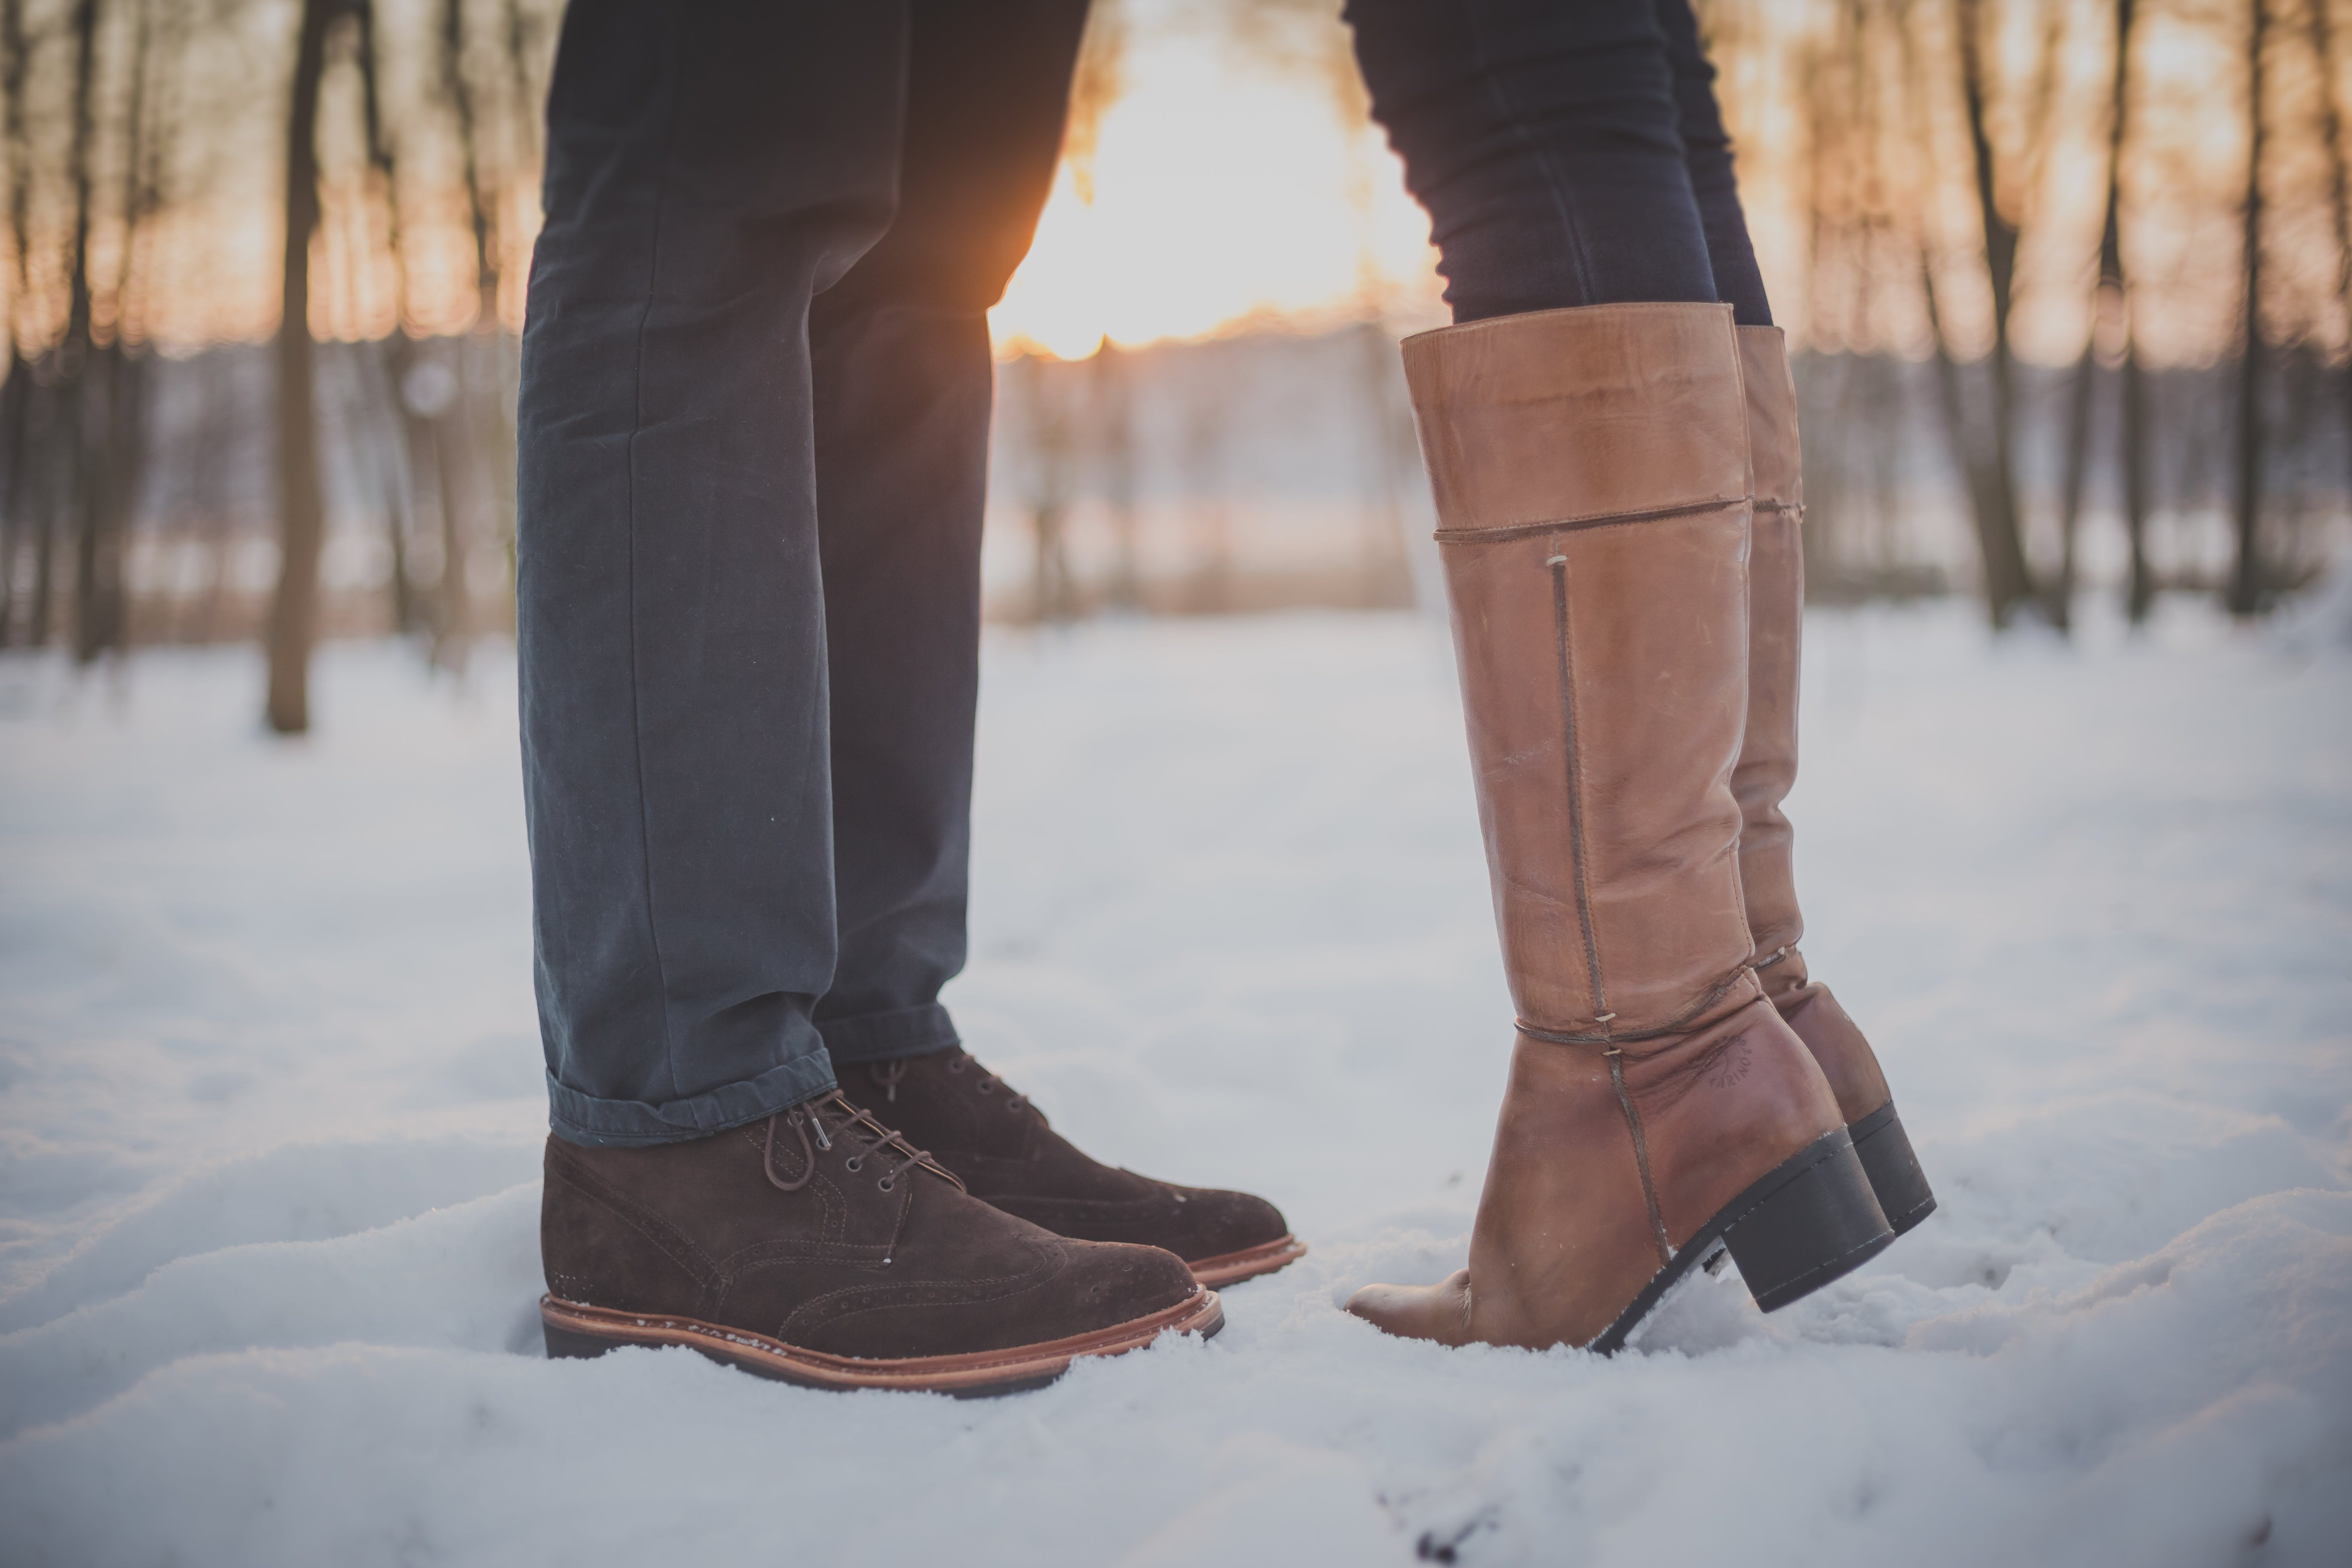 Free stock photo of snow, couple, winter, shoes